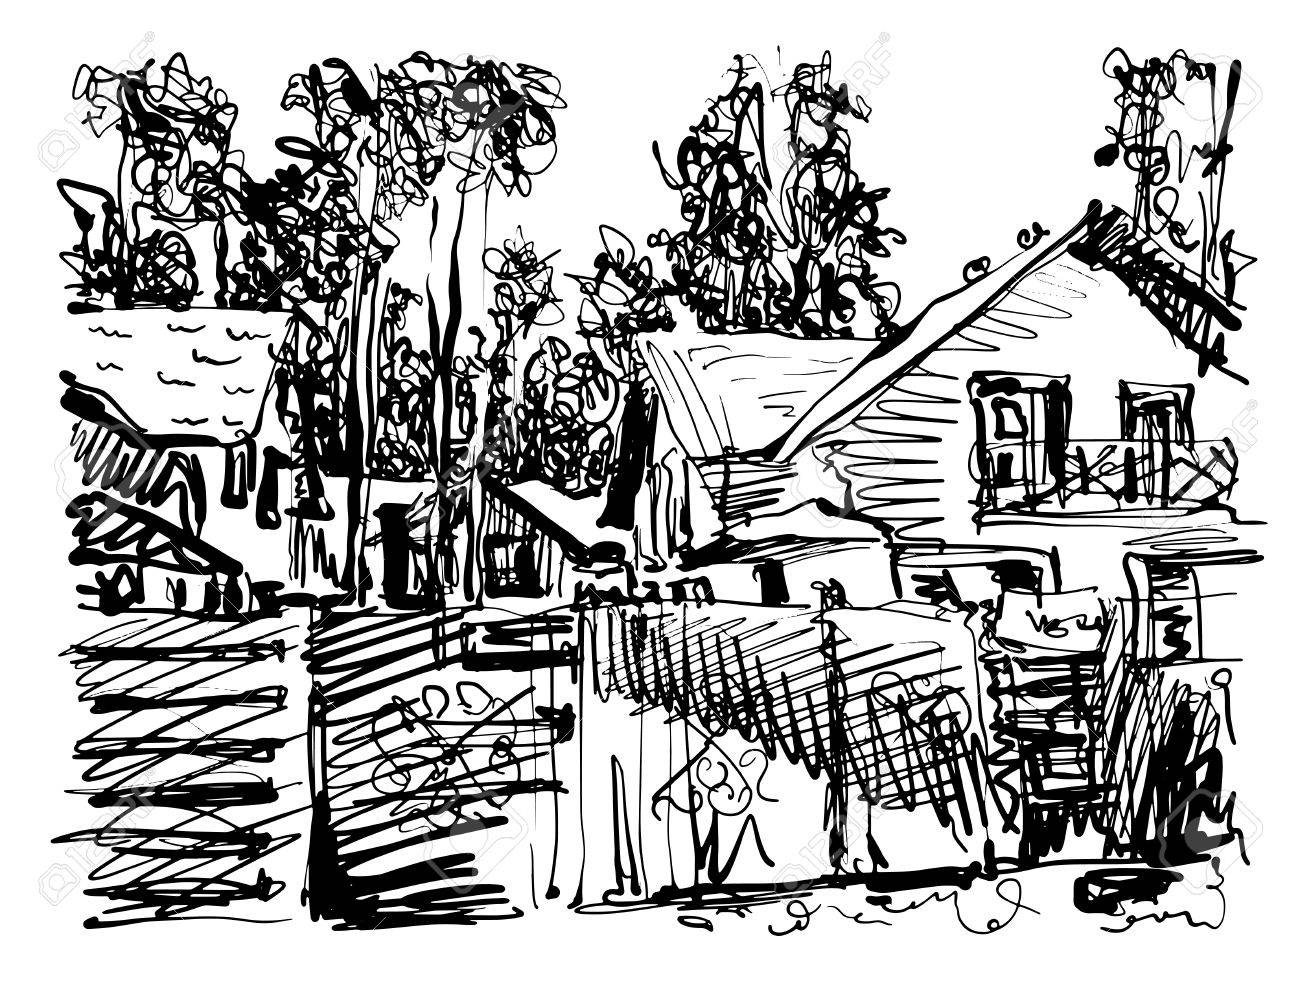 1300x987 Black And White Digital Graphic Of Village Composition With Houses